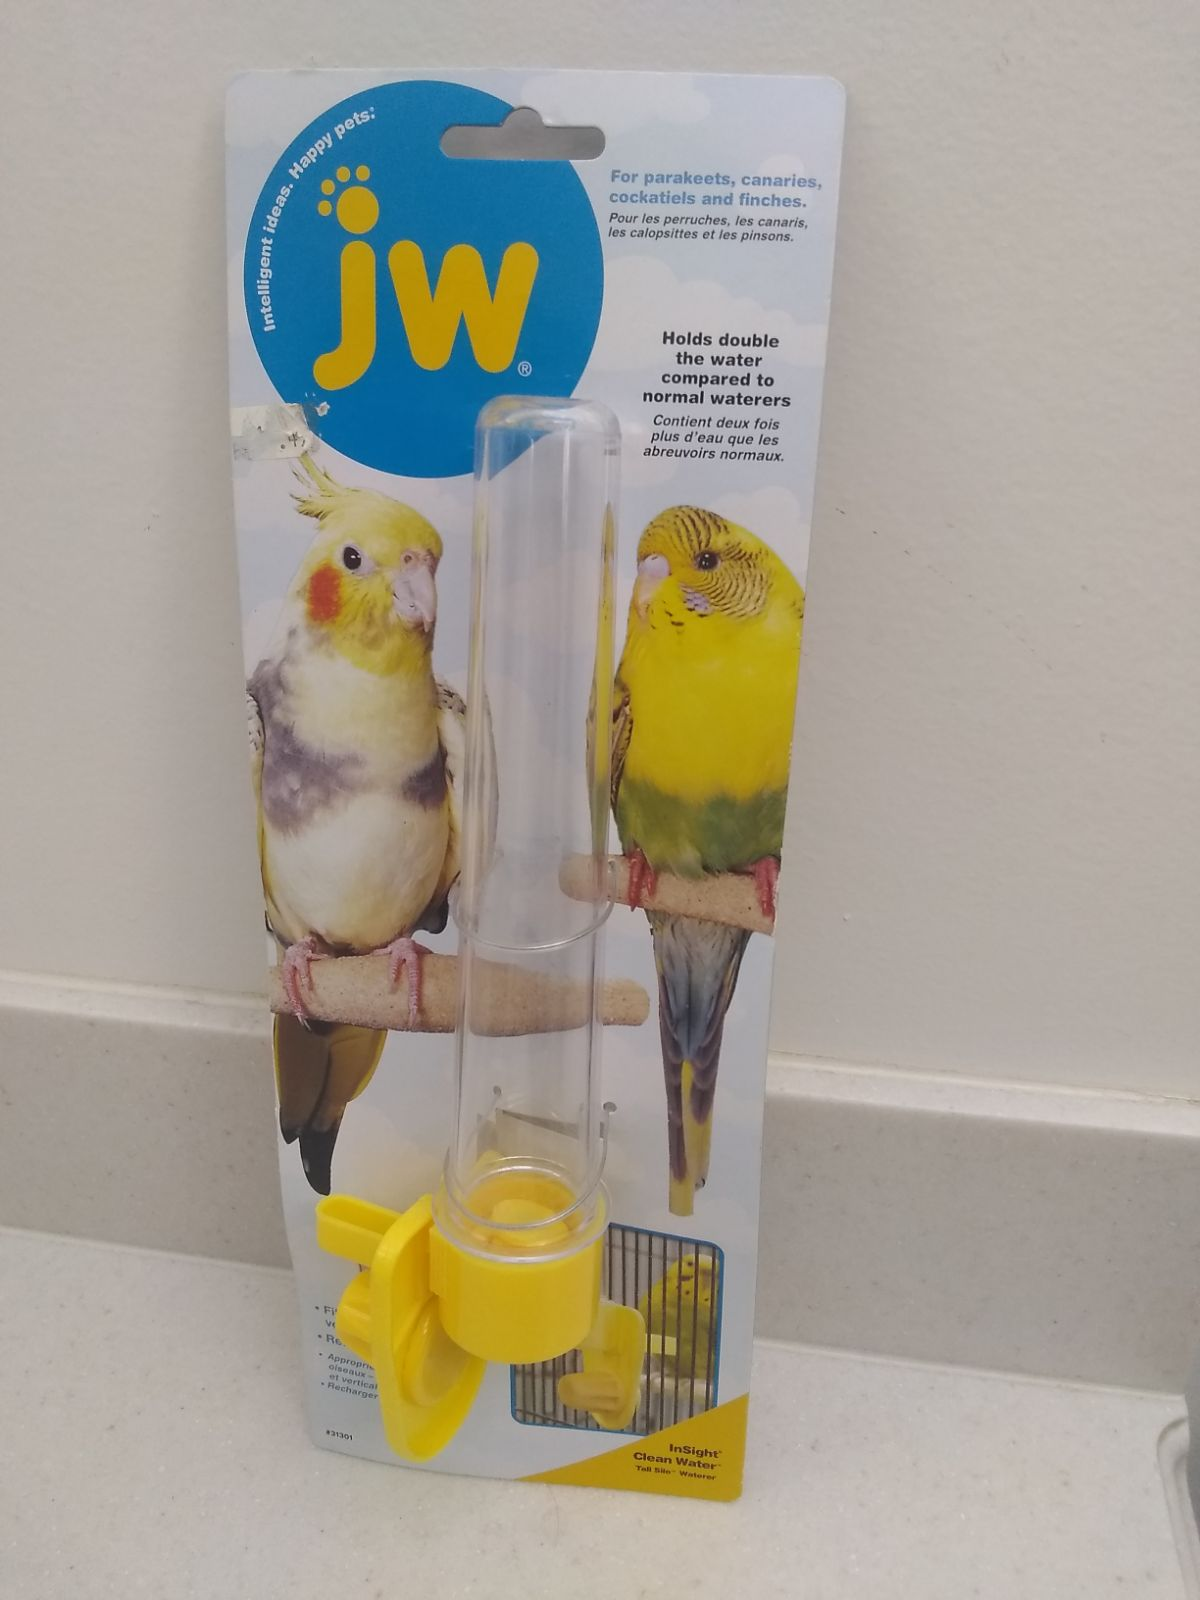 JW Silo Waterer Insight Clean Water Larg